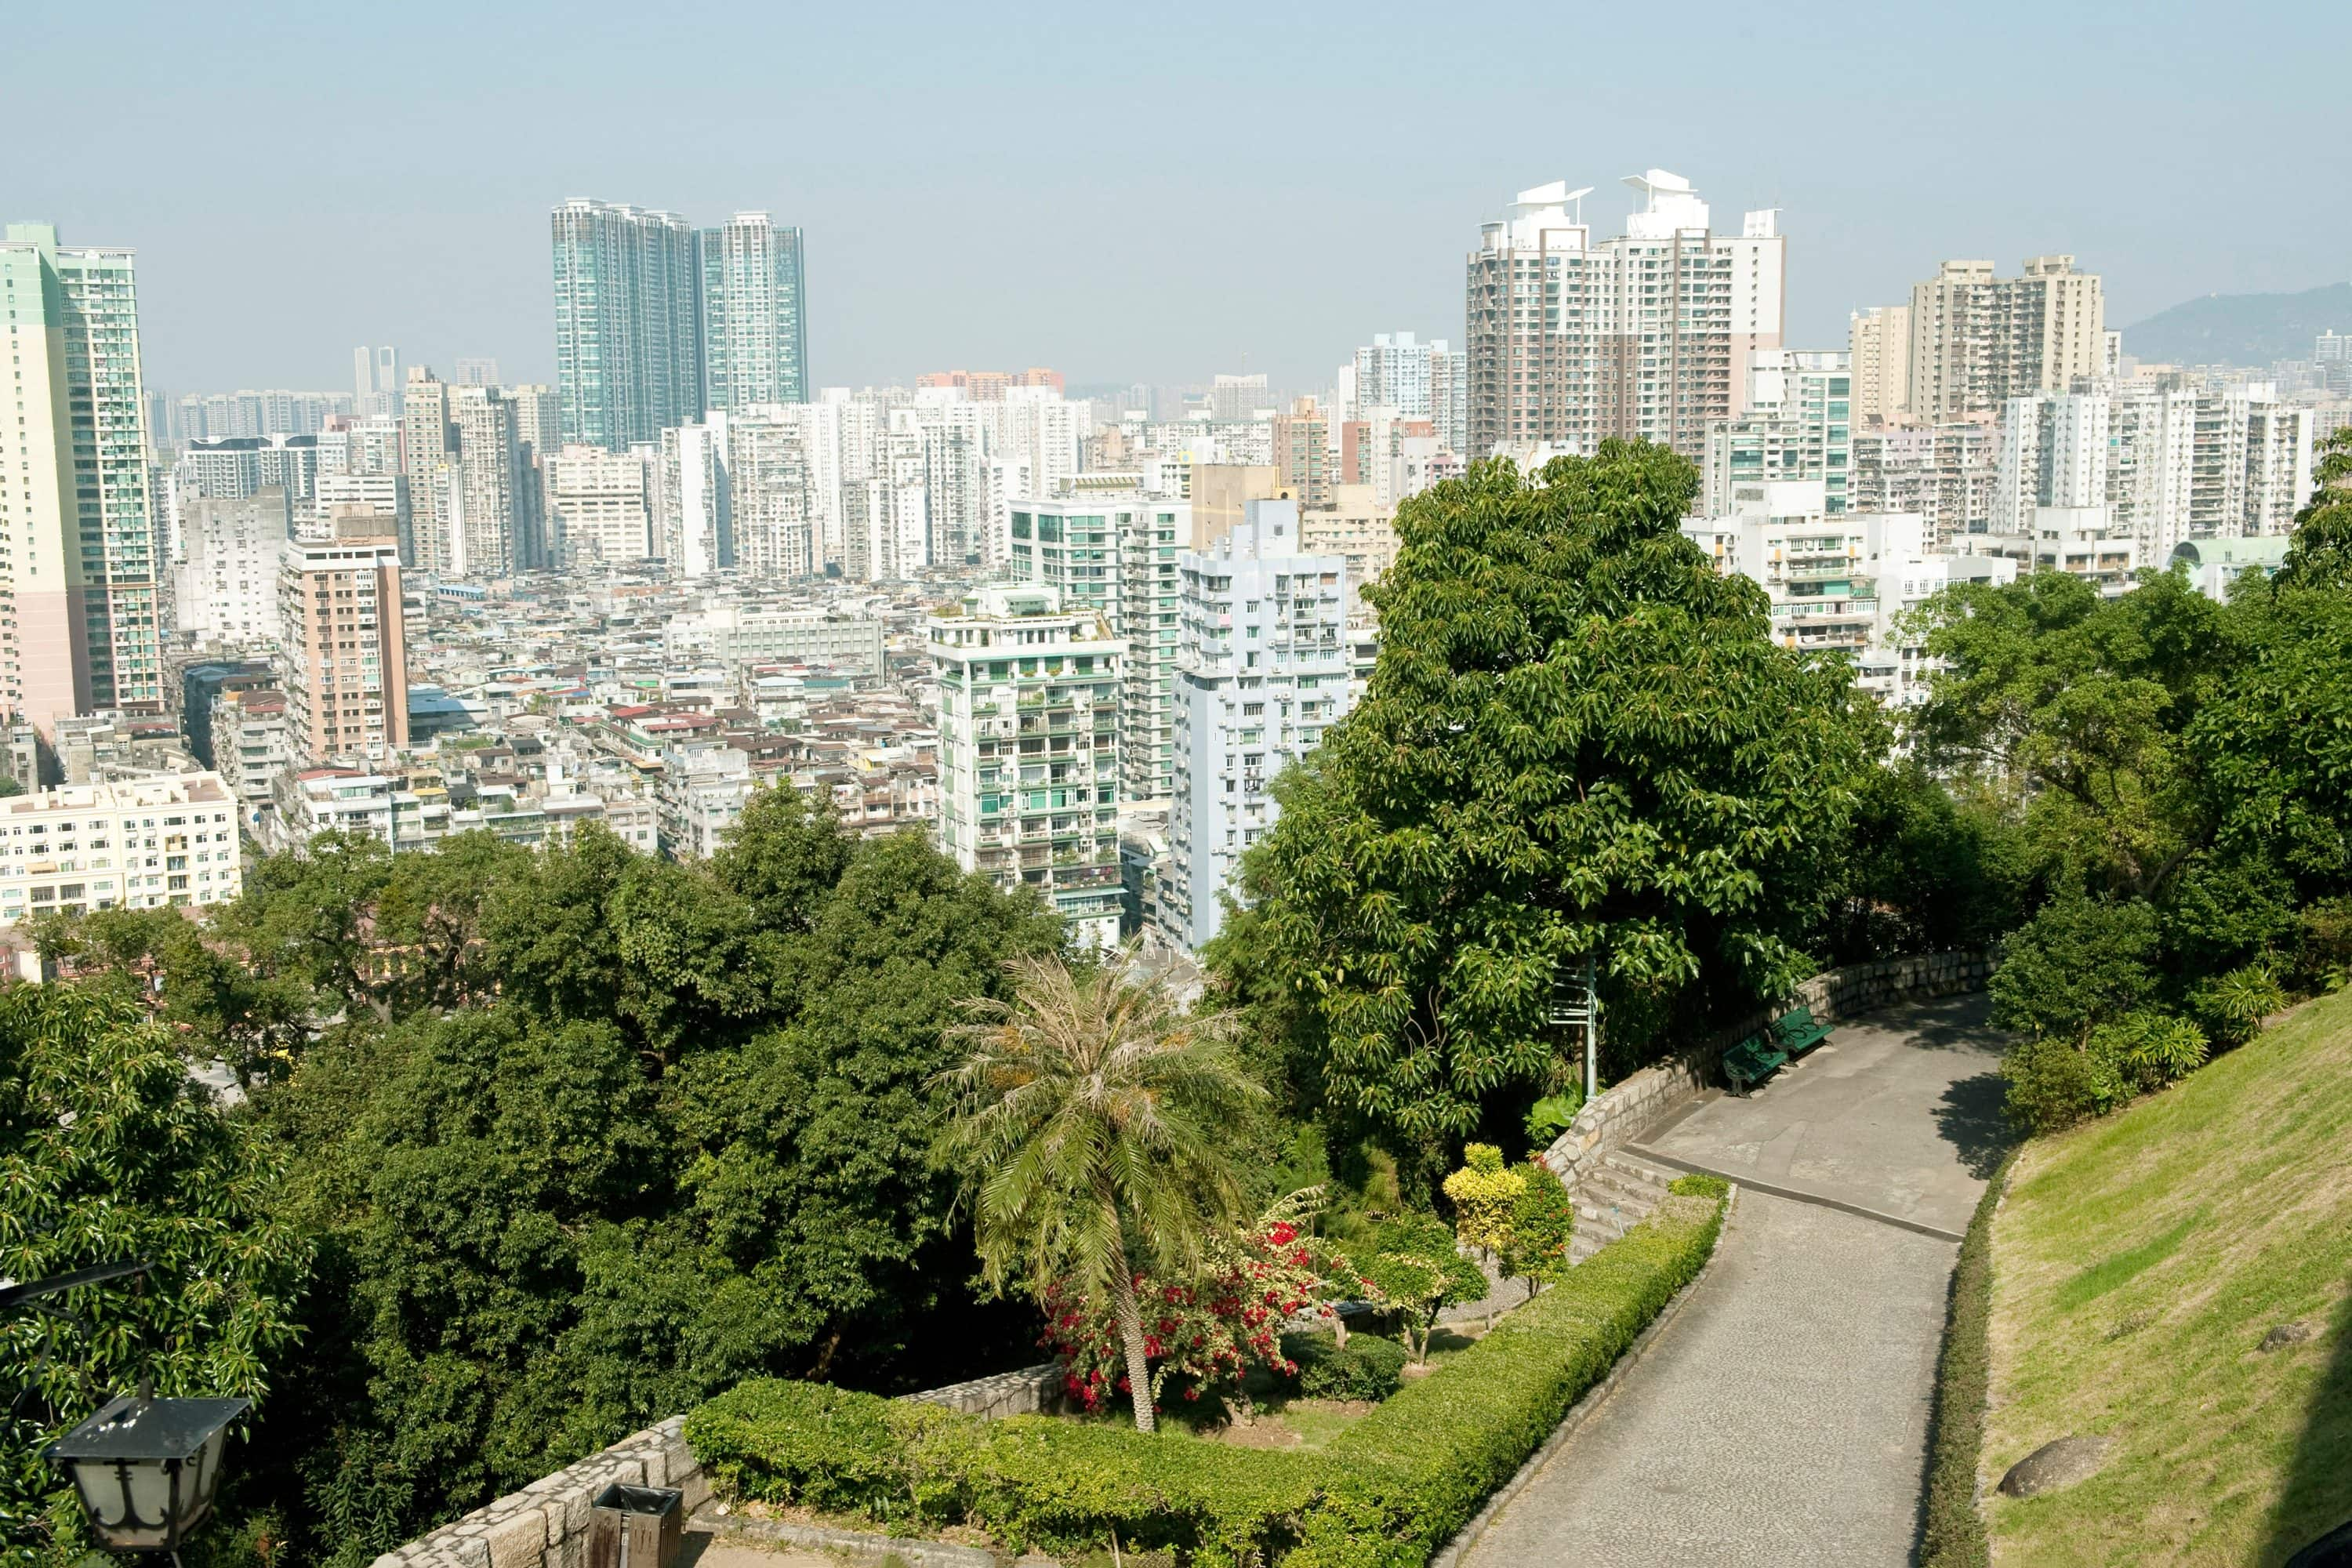 View from the fortress, Macau